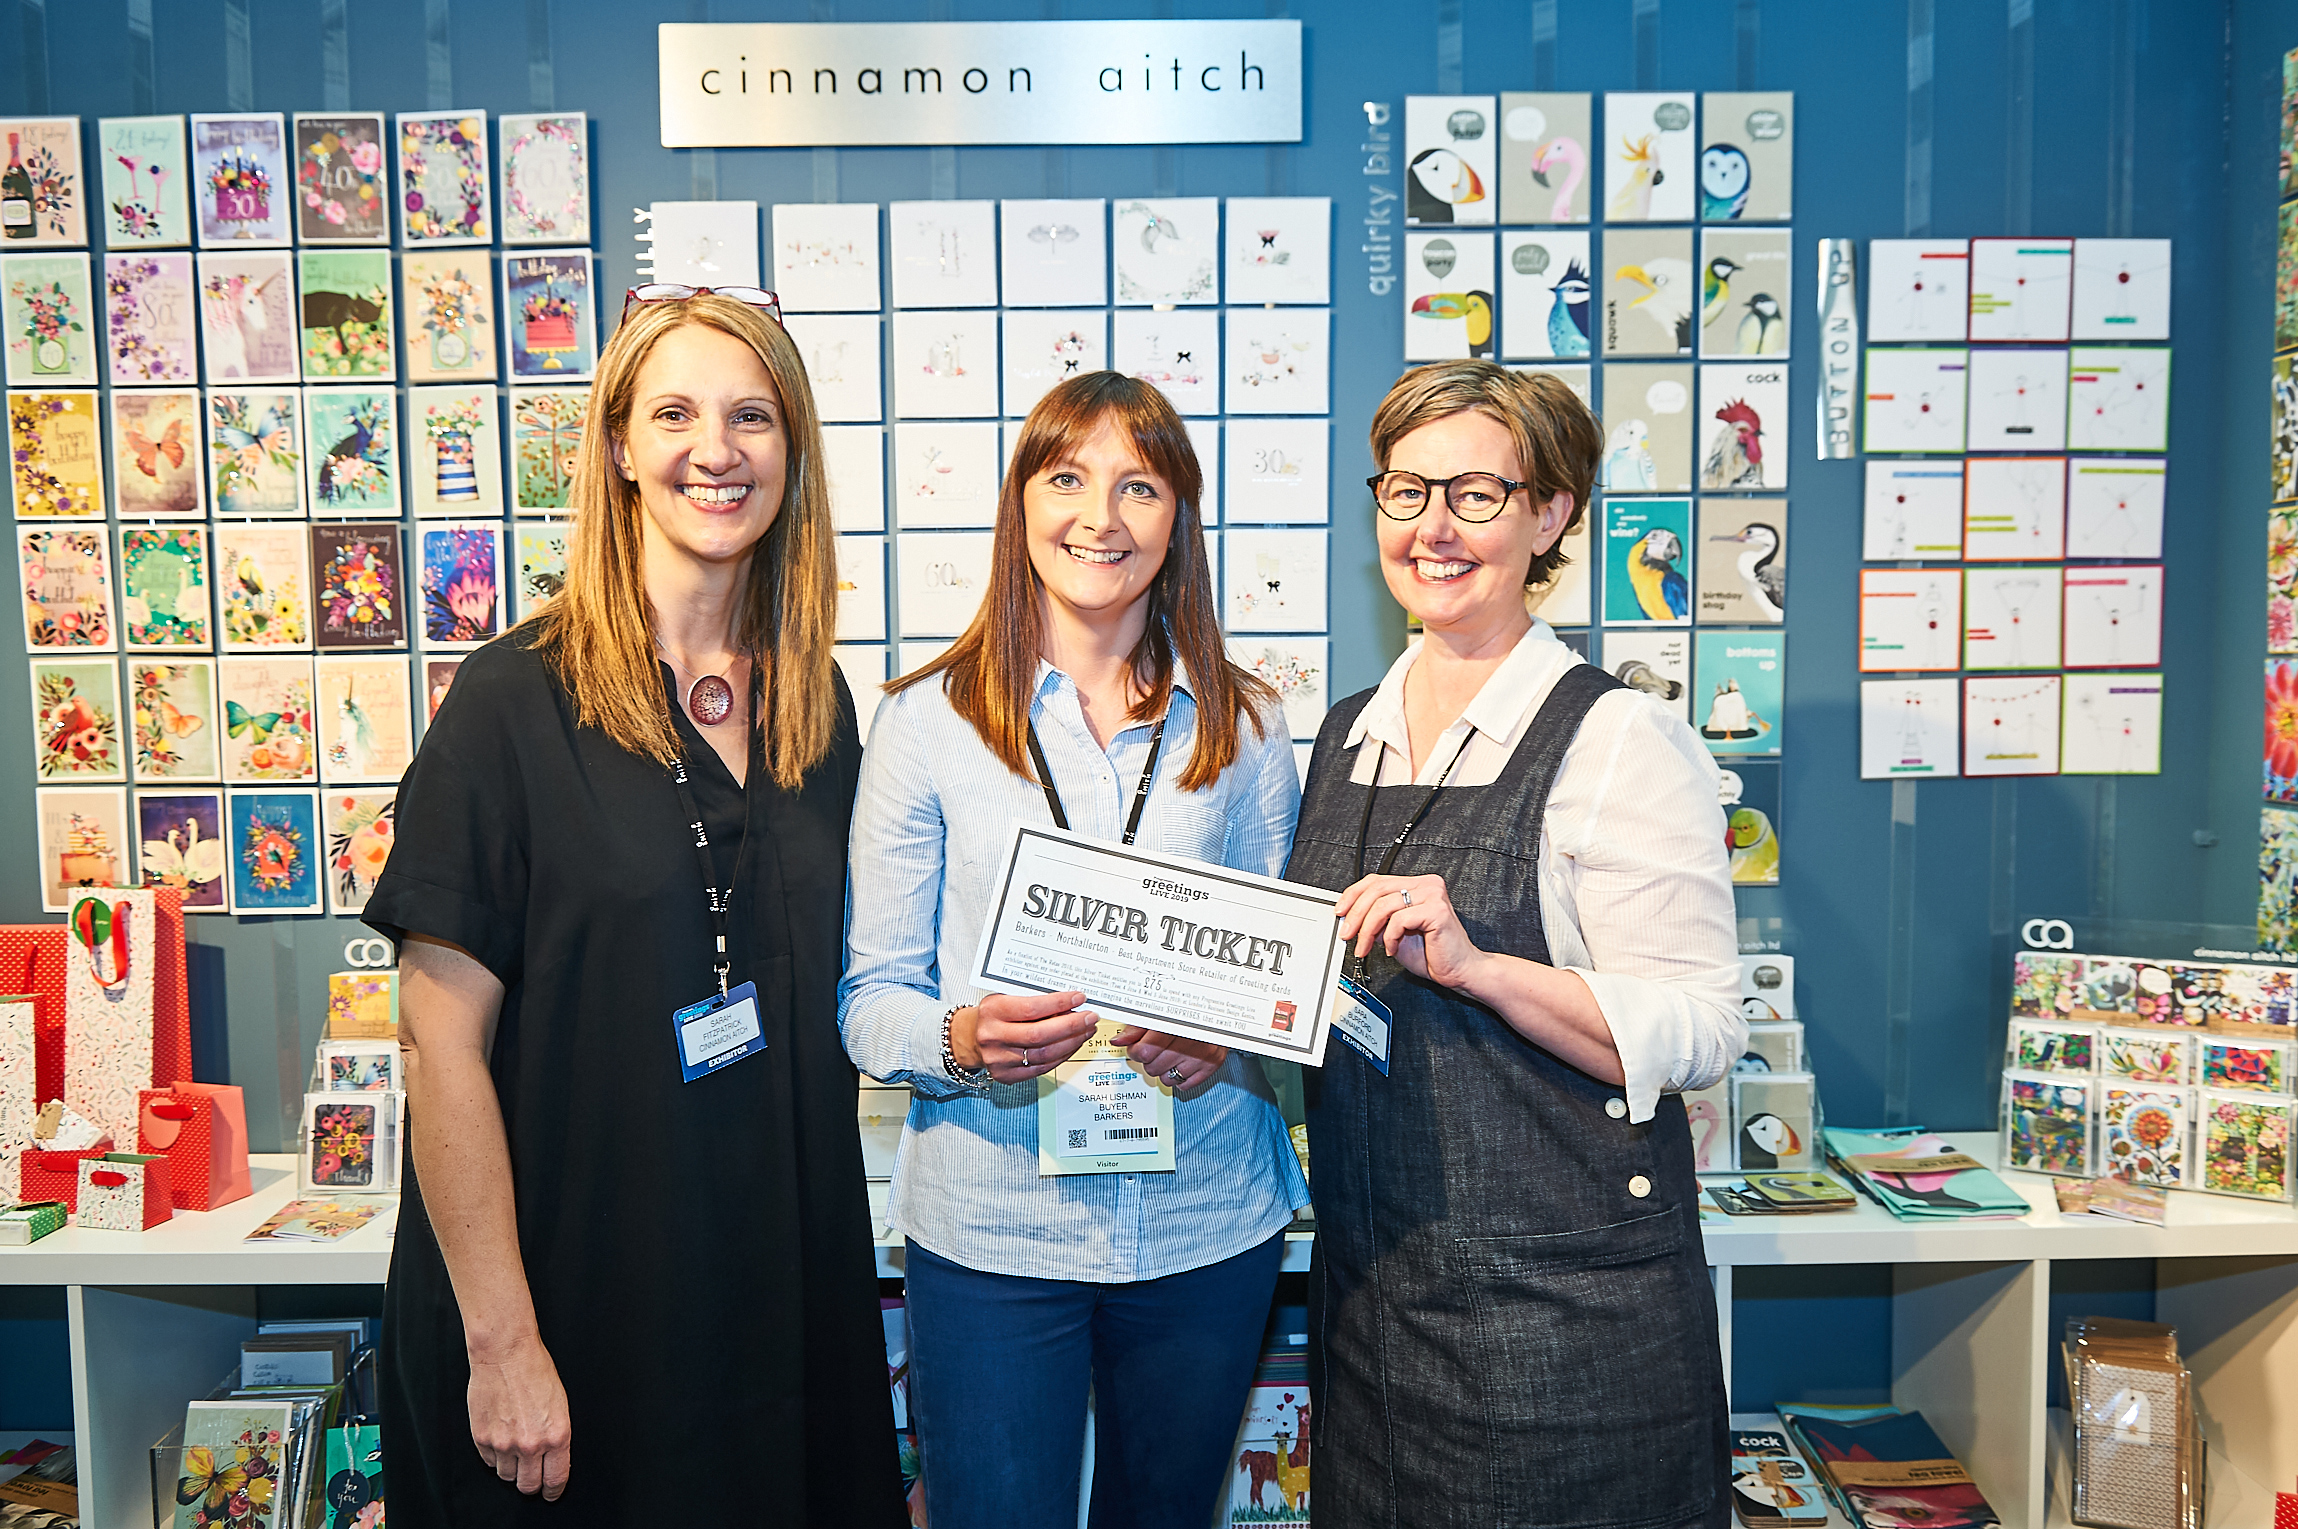 Above: Barkers' Sarah Lishman (centre) was delighted to spend her Silver ticket with Cinnamon Aitch at PG Live last June.